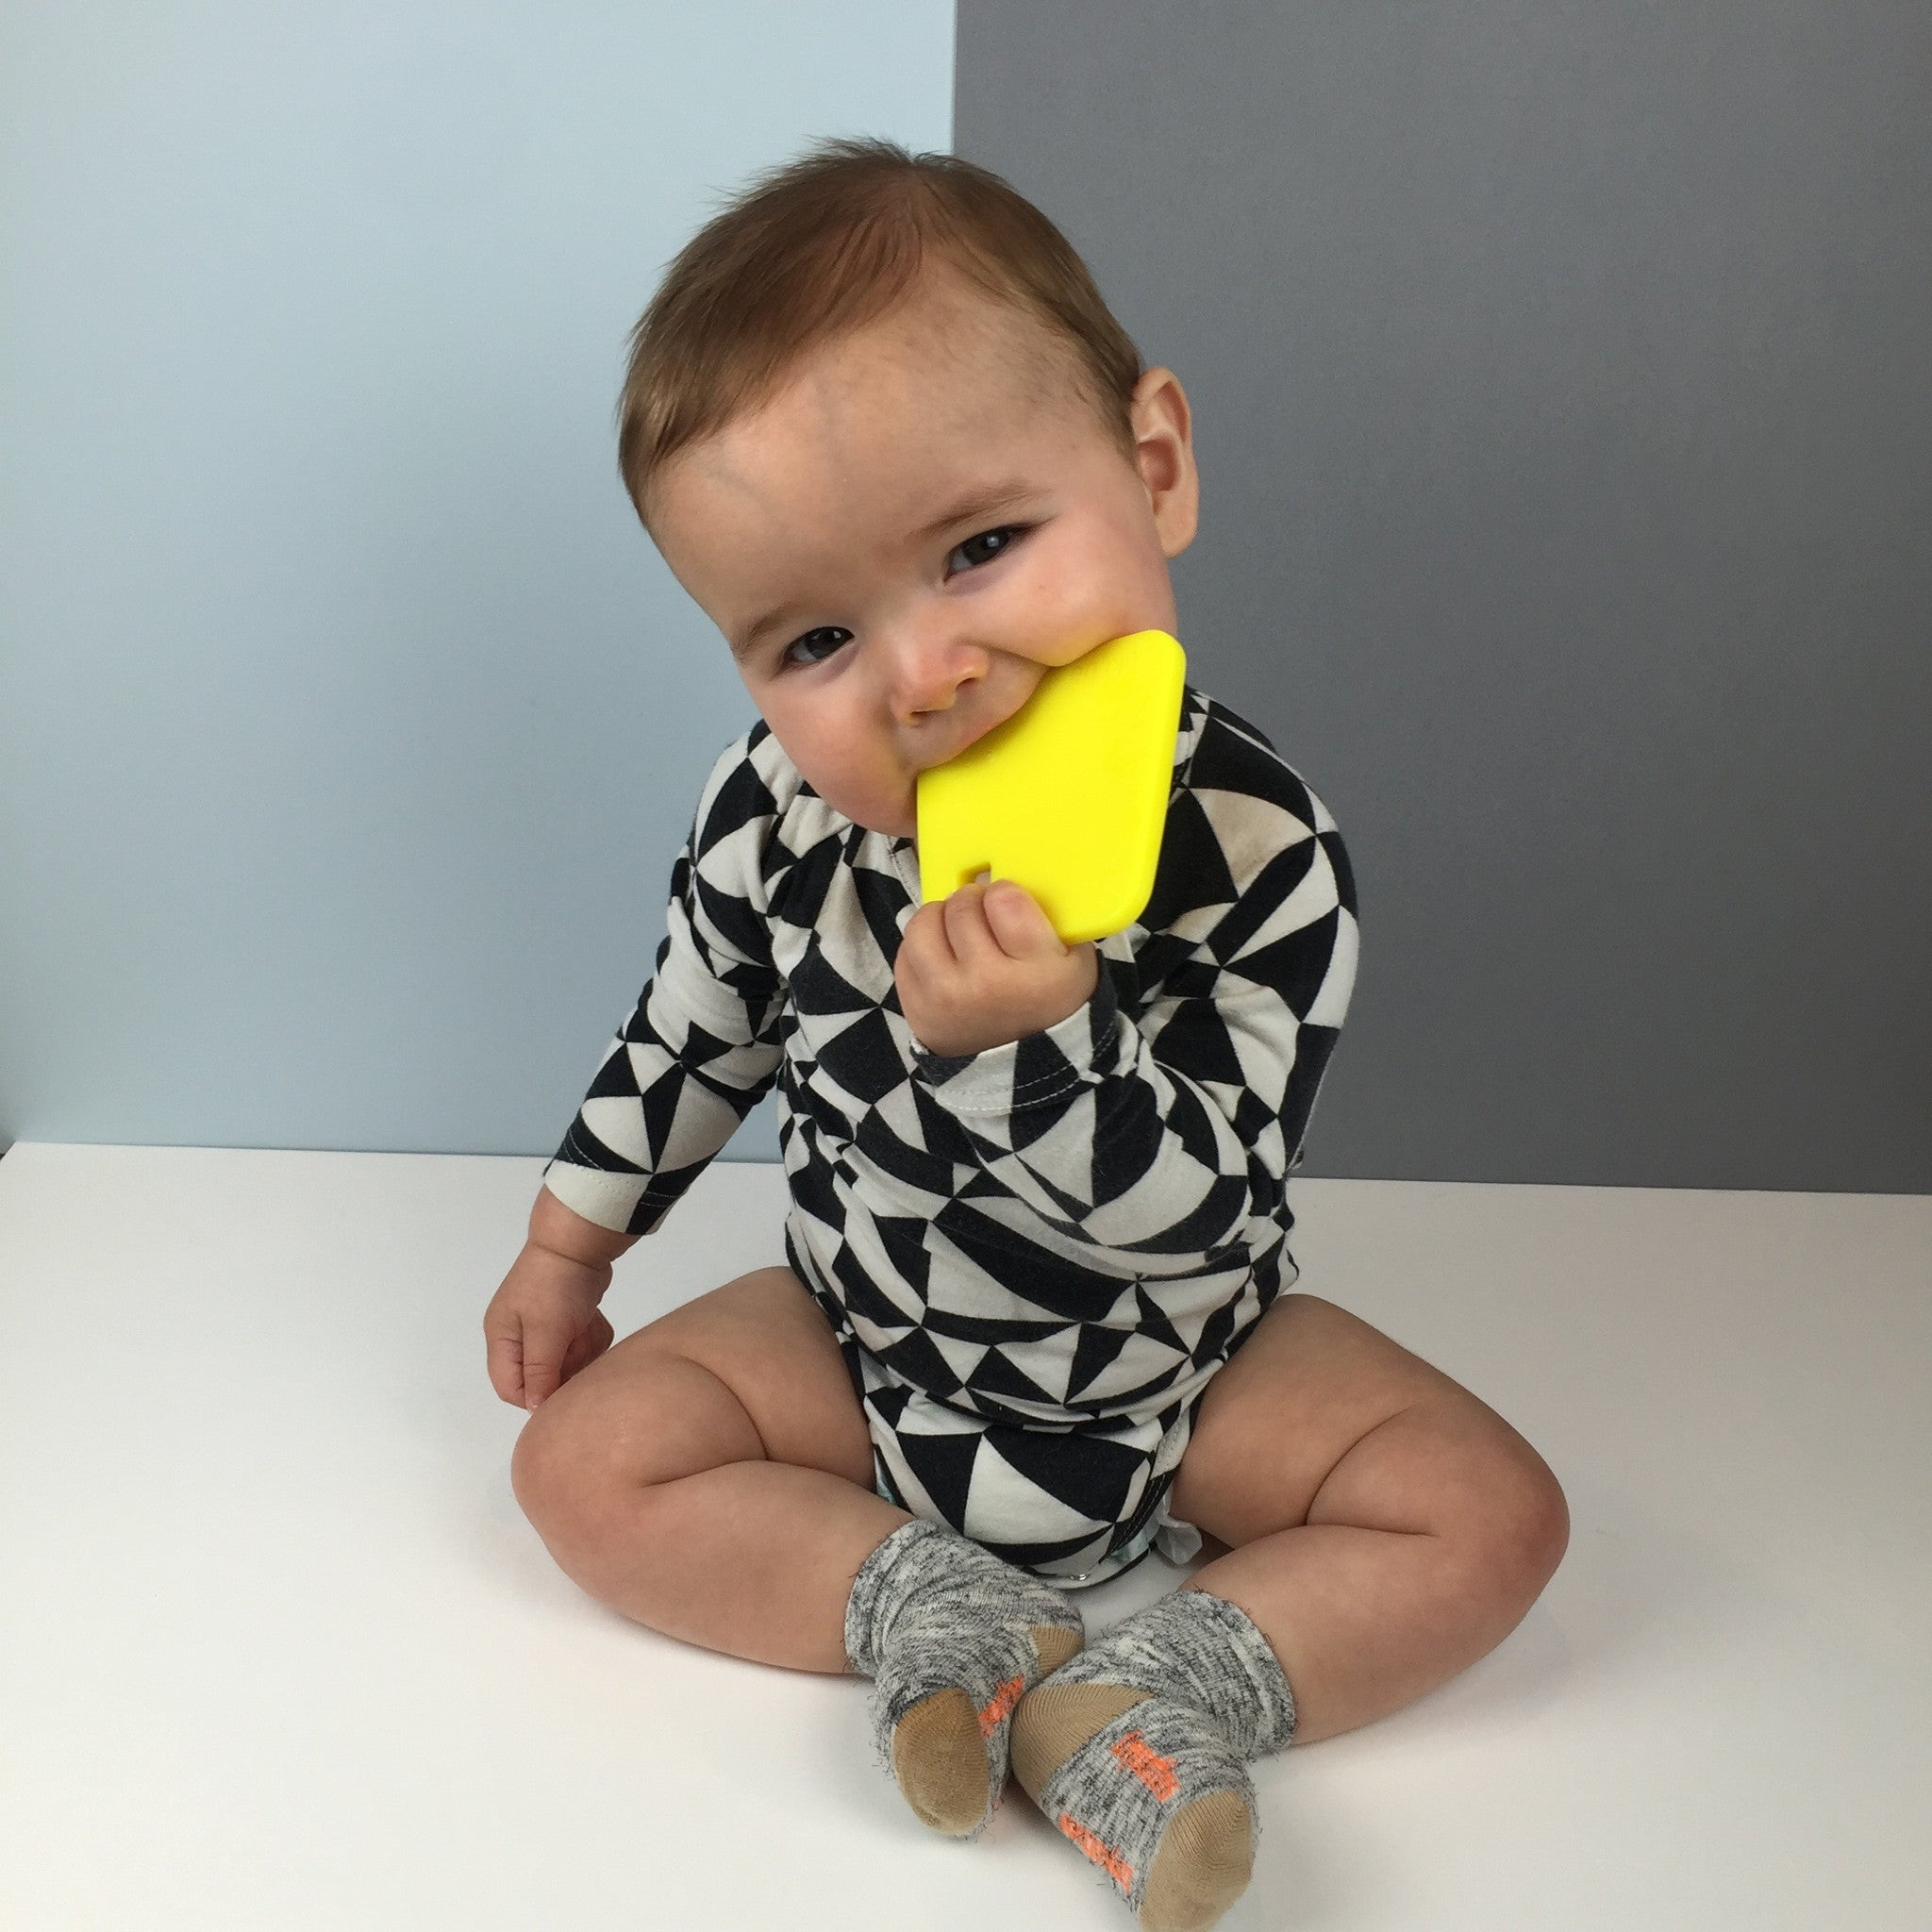 Neon Yellow Circle Teether